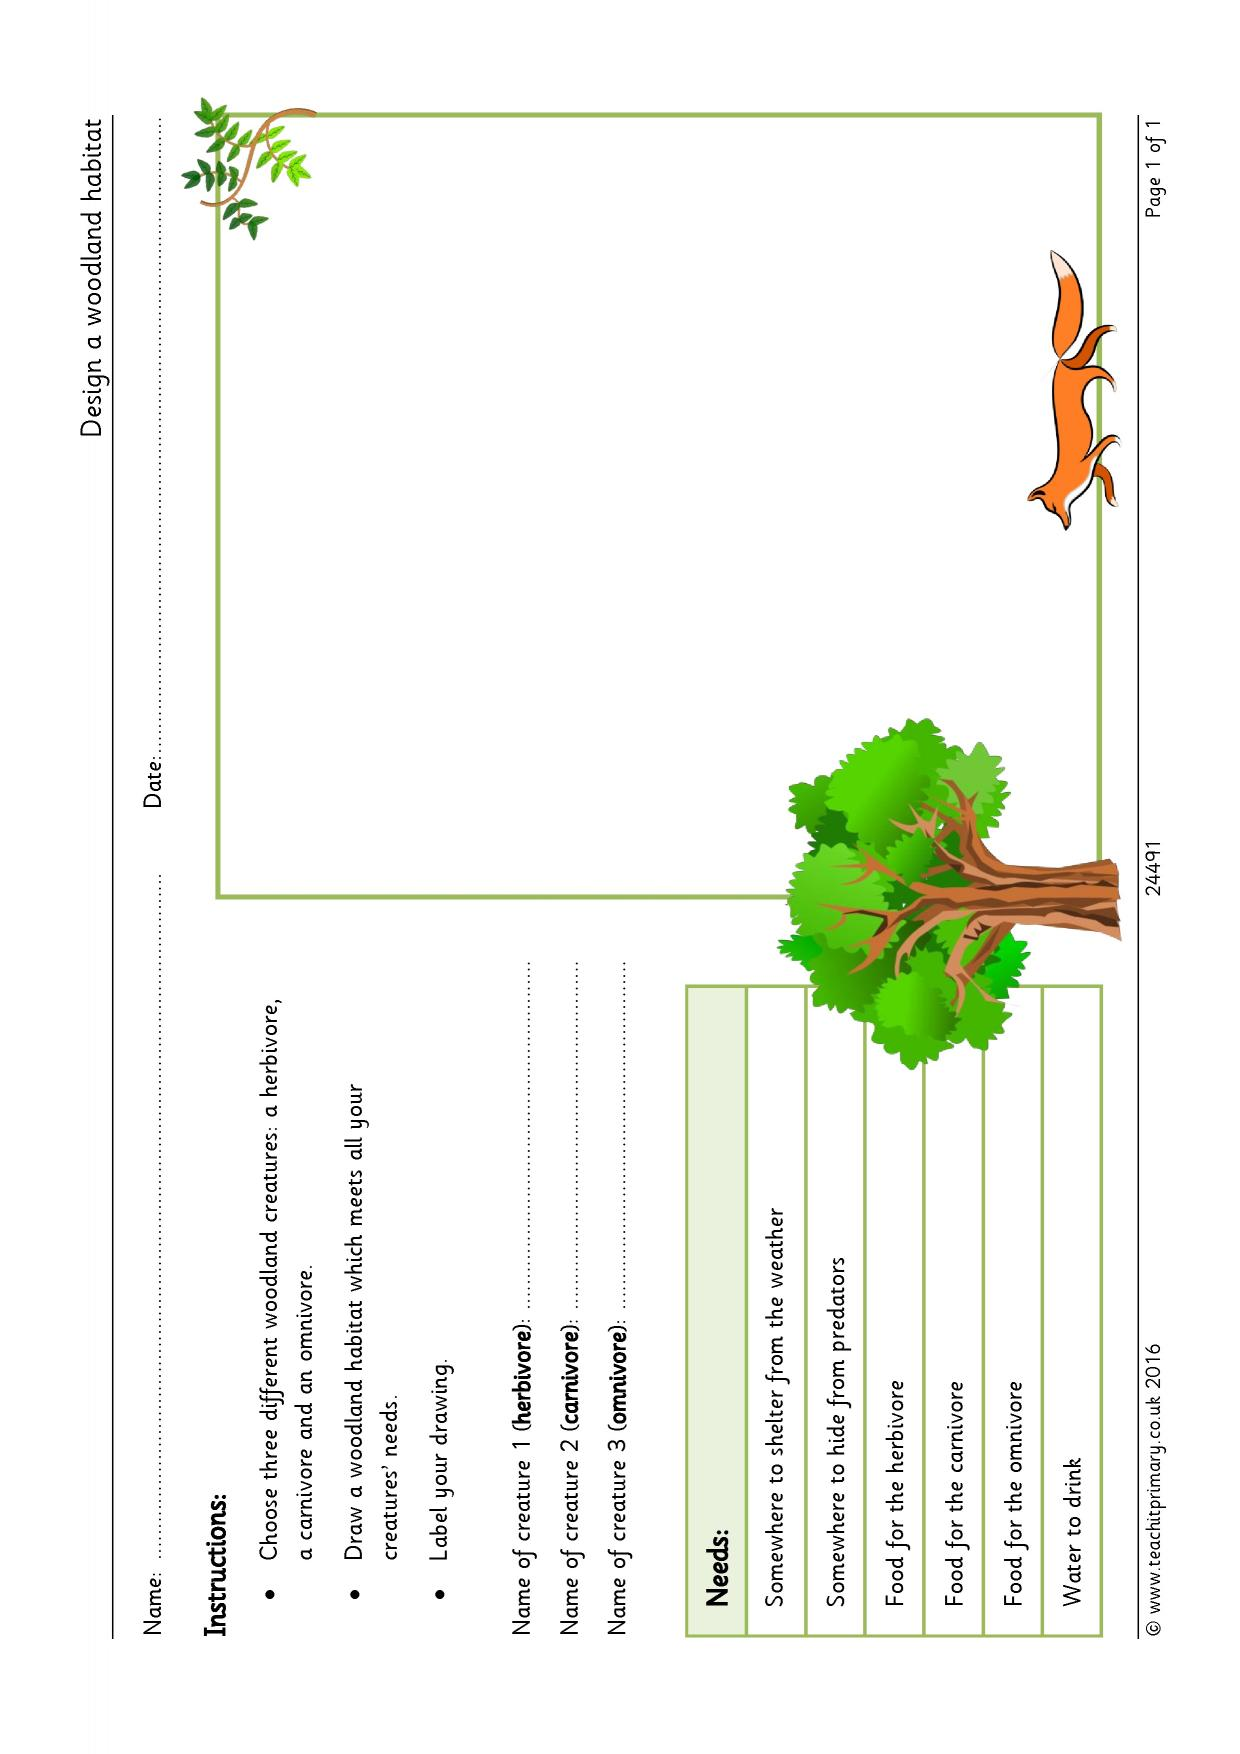 Worksheet Habitat Worksheets Grass Fedjp Worksheet Study